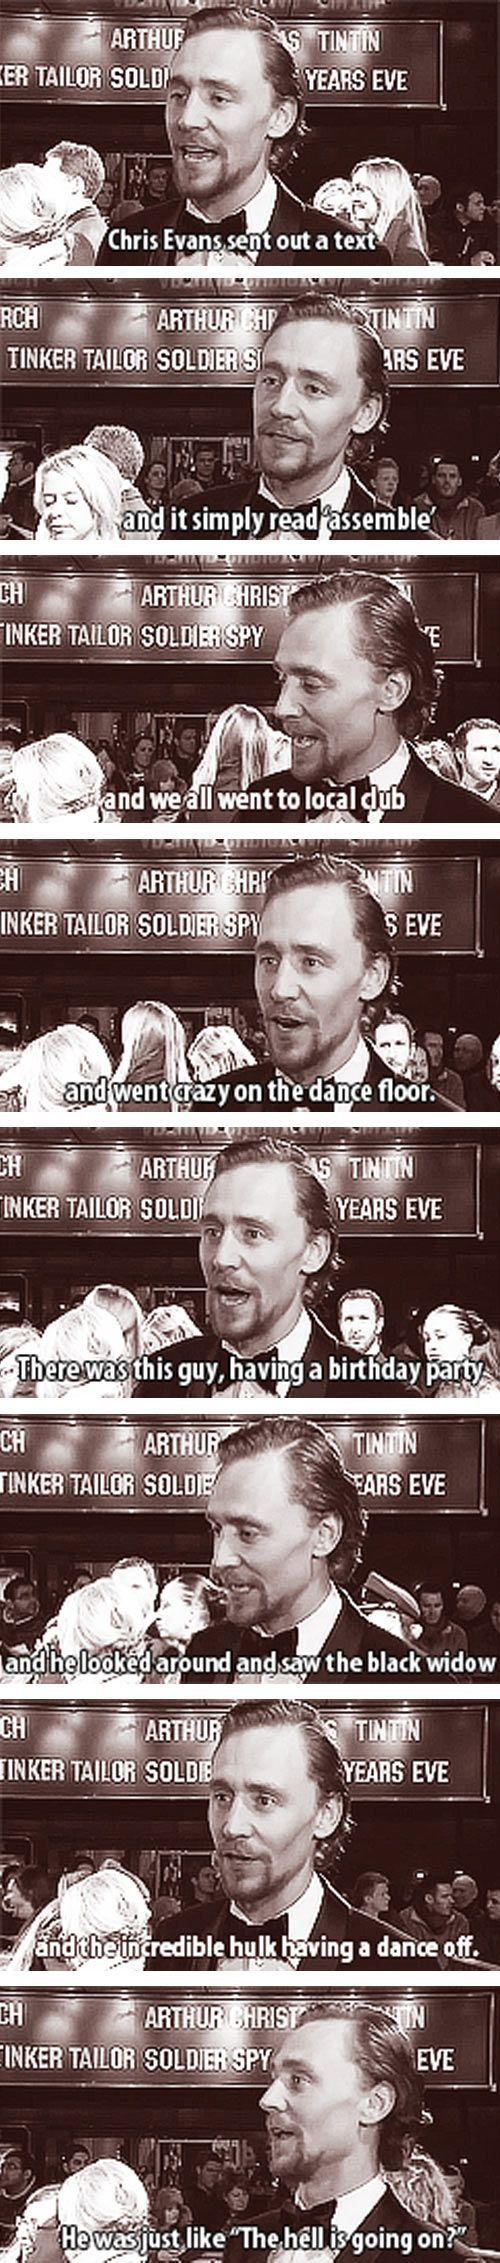 I want Loki and Captain America and The Black Widow and The Hulk to come to my birthday too. Especially if they bring Iron Man.